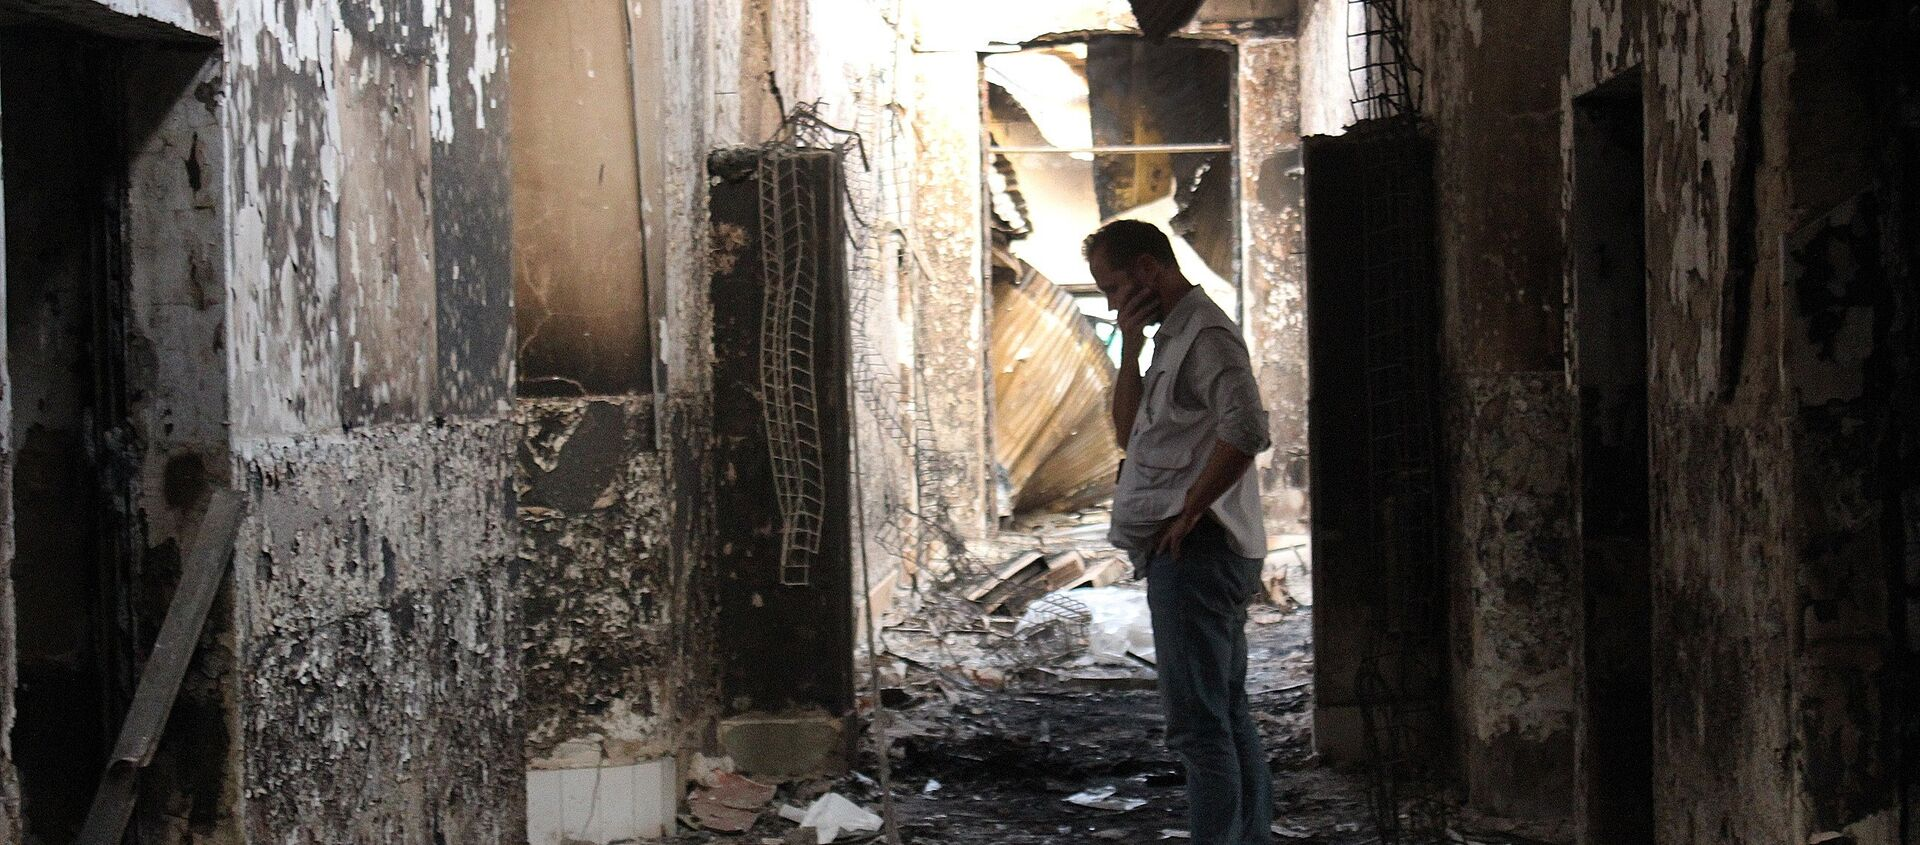 In this Friday, Oct. 16, 2015 photo, an employee of Doctors Without Borders walks inside the charred remains of their hospital after it was hit by a U.S. airstrike in Kunduz, Afghanistan - Sputnik International, 1920, 16.08.2021